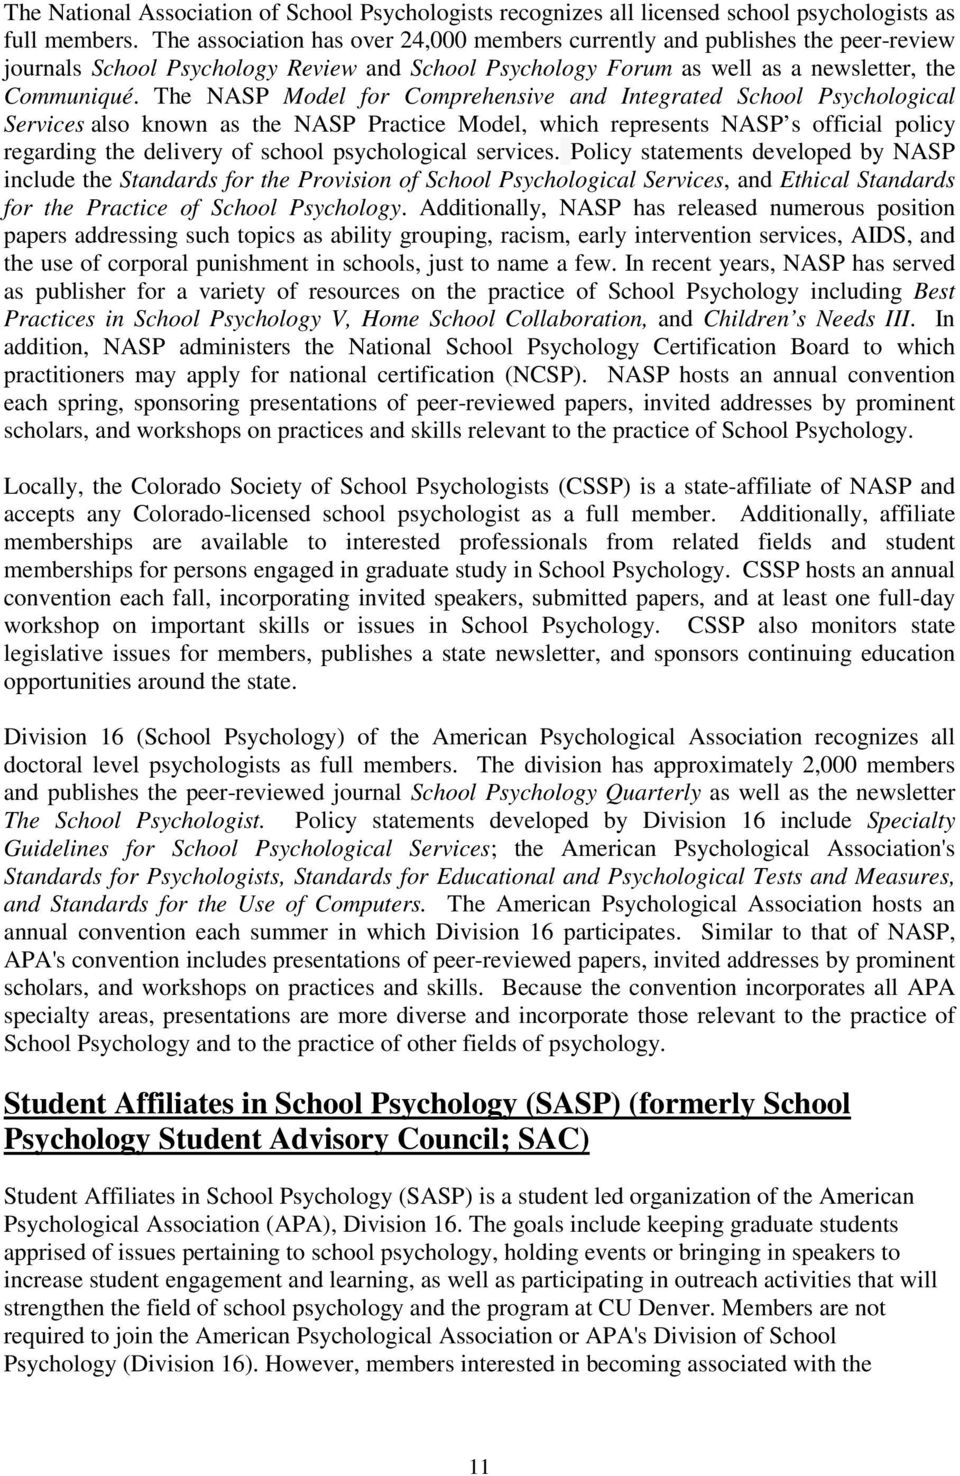 The NASP Model for Comprehensive and Integrated School Psychological Services also known as the NASP Practice Model, which represents NASP s official policy regarding the delivery of school